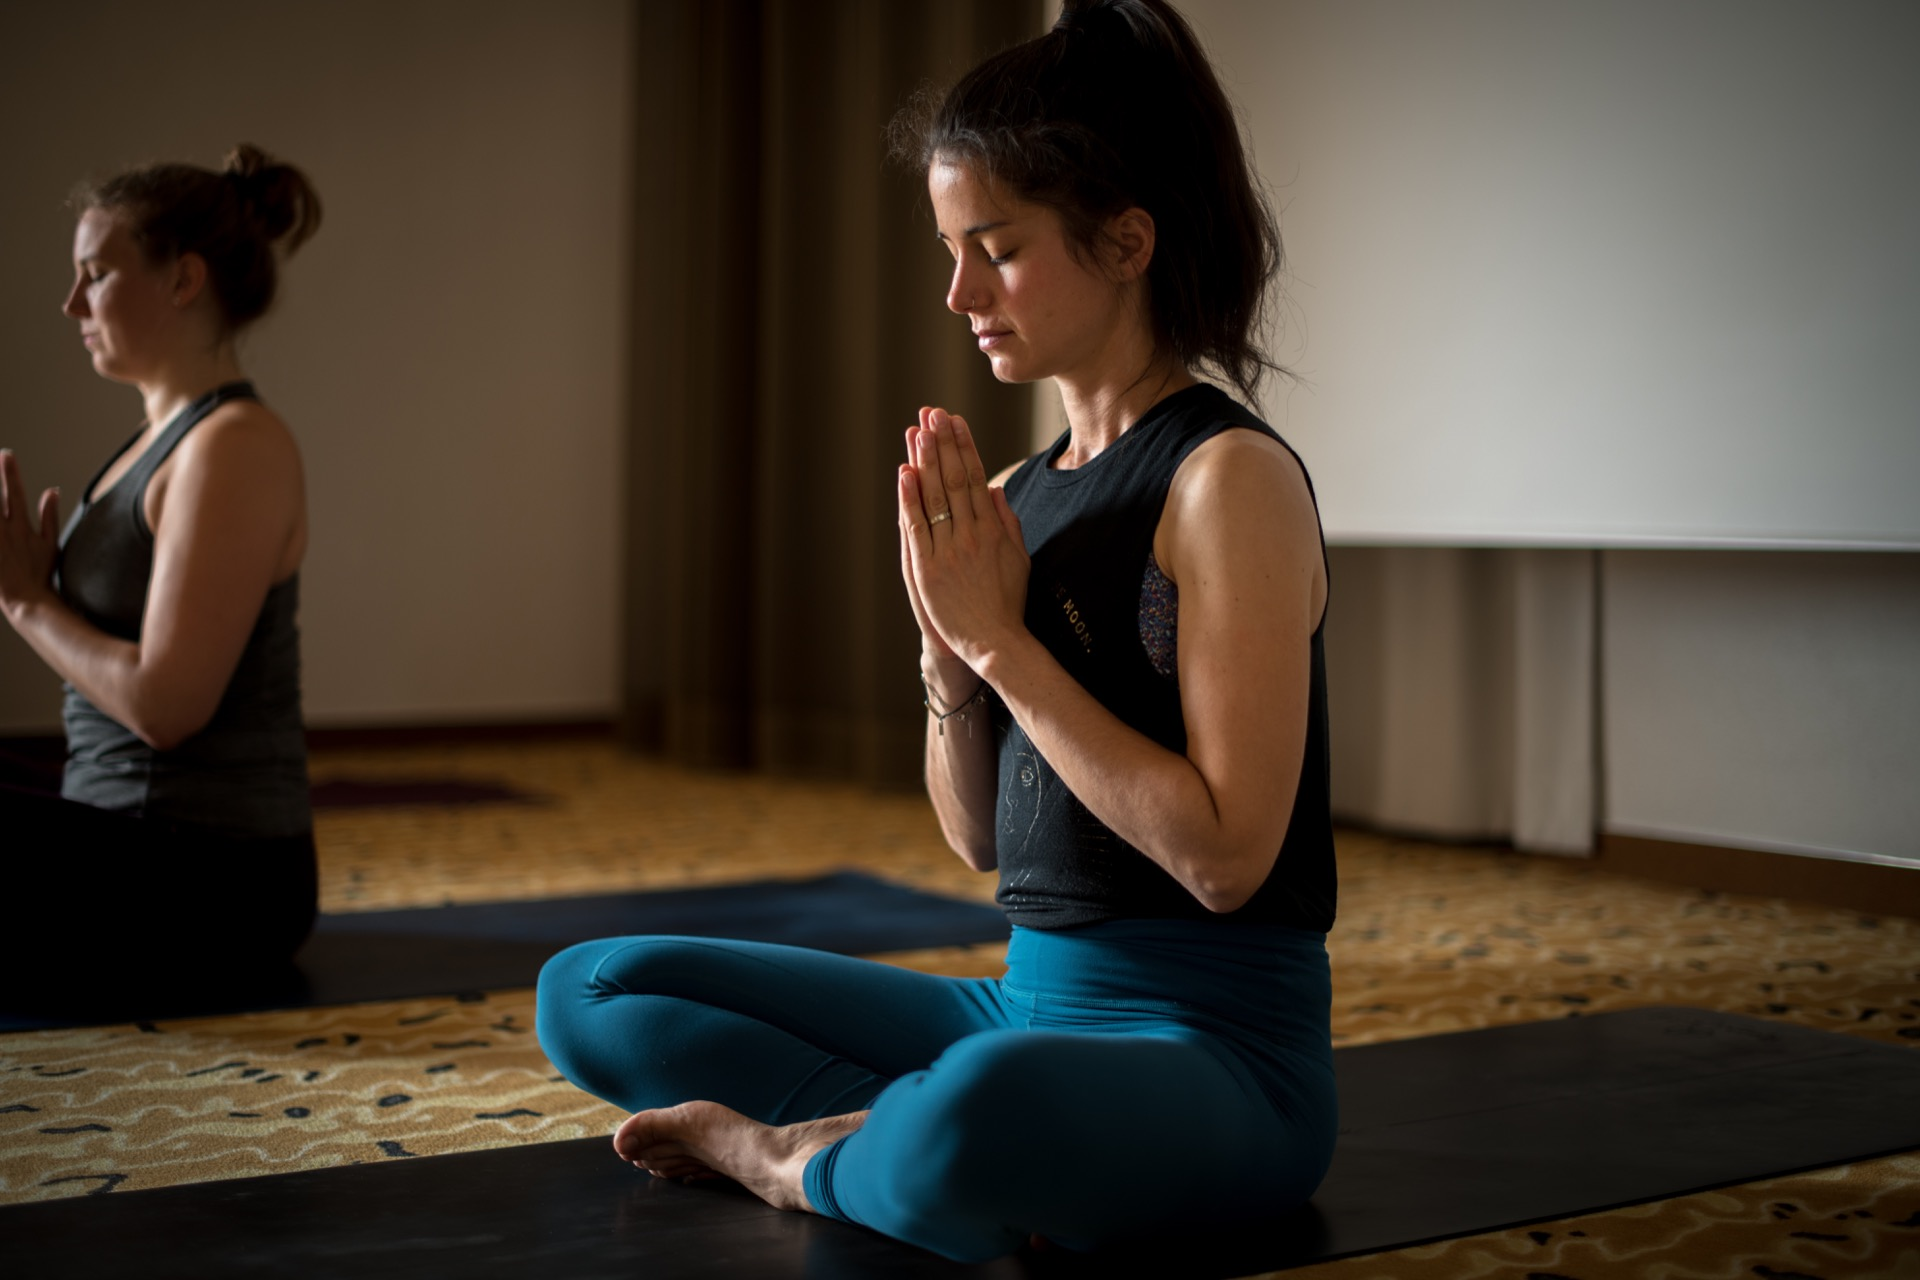 Hie-Kim-Friends-2019-Yoga-Retreat-Alina-Matis-Photography-110 - Hie Kim Yoga - Yoga Retreat - Yoga Workshops und Reisen